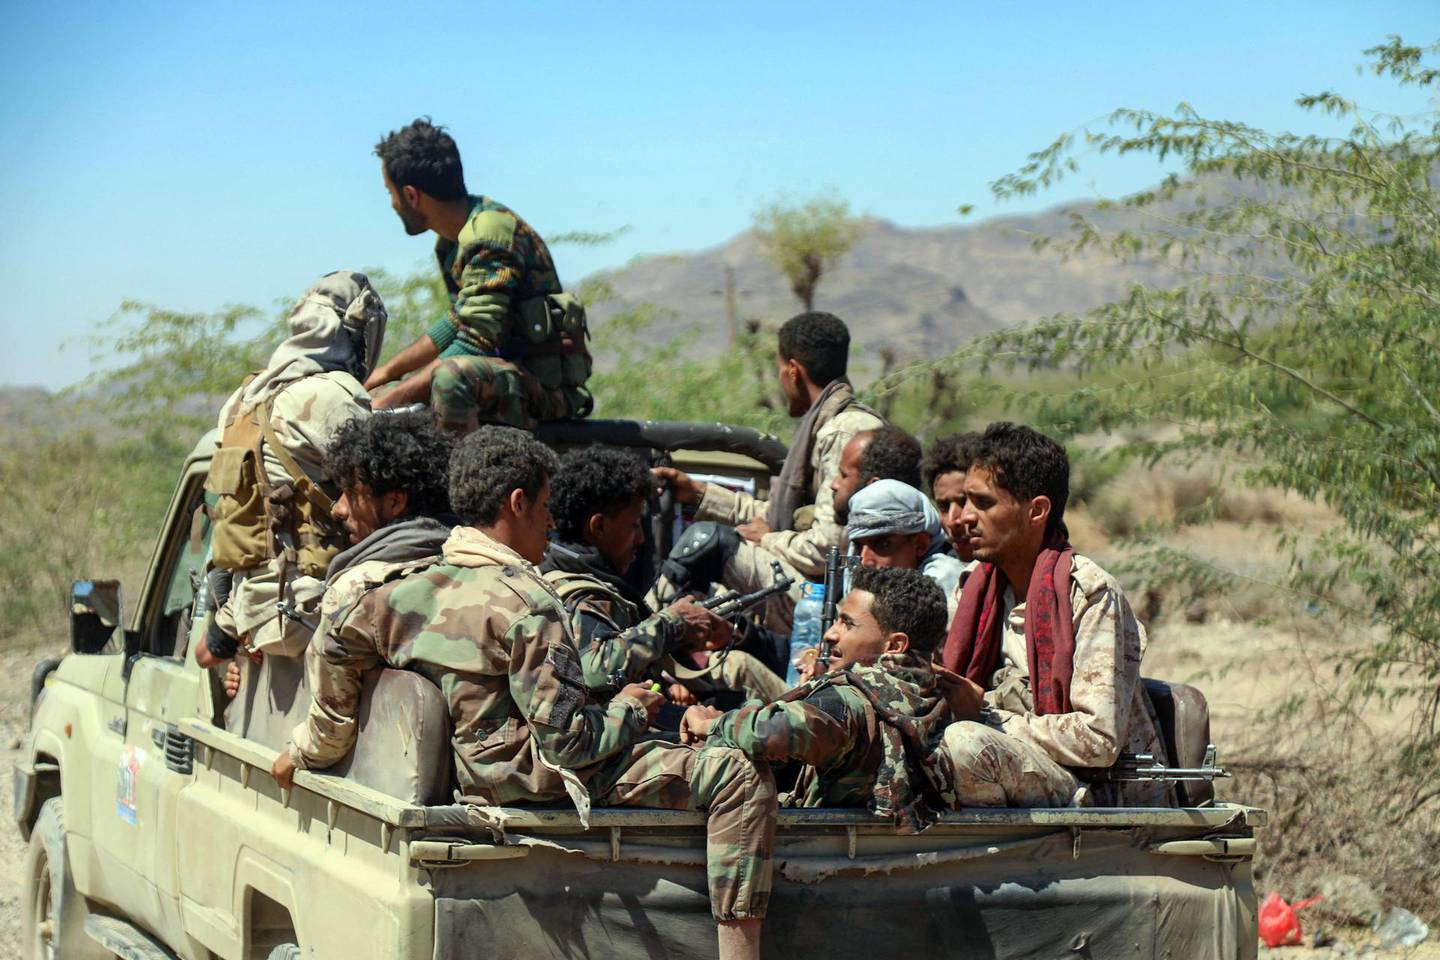 Forces loyal to Yemen's Saudi-backed government sit in the back of a pick-up truck as they deploy during clashes with Huthi rebel fighters west of the country's third-city of Taez, on March 16, 2021. / AFP / Ahmad AL-BASHA